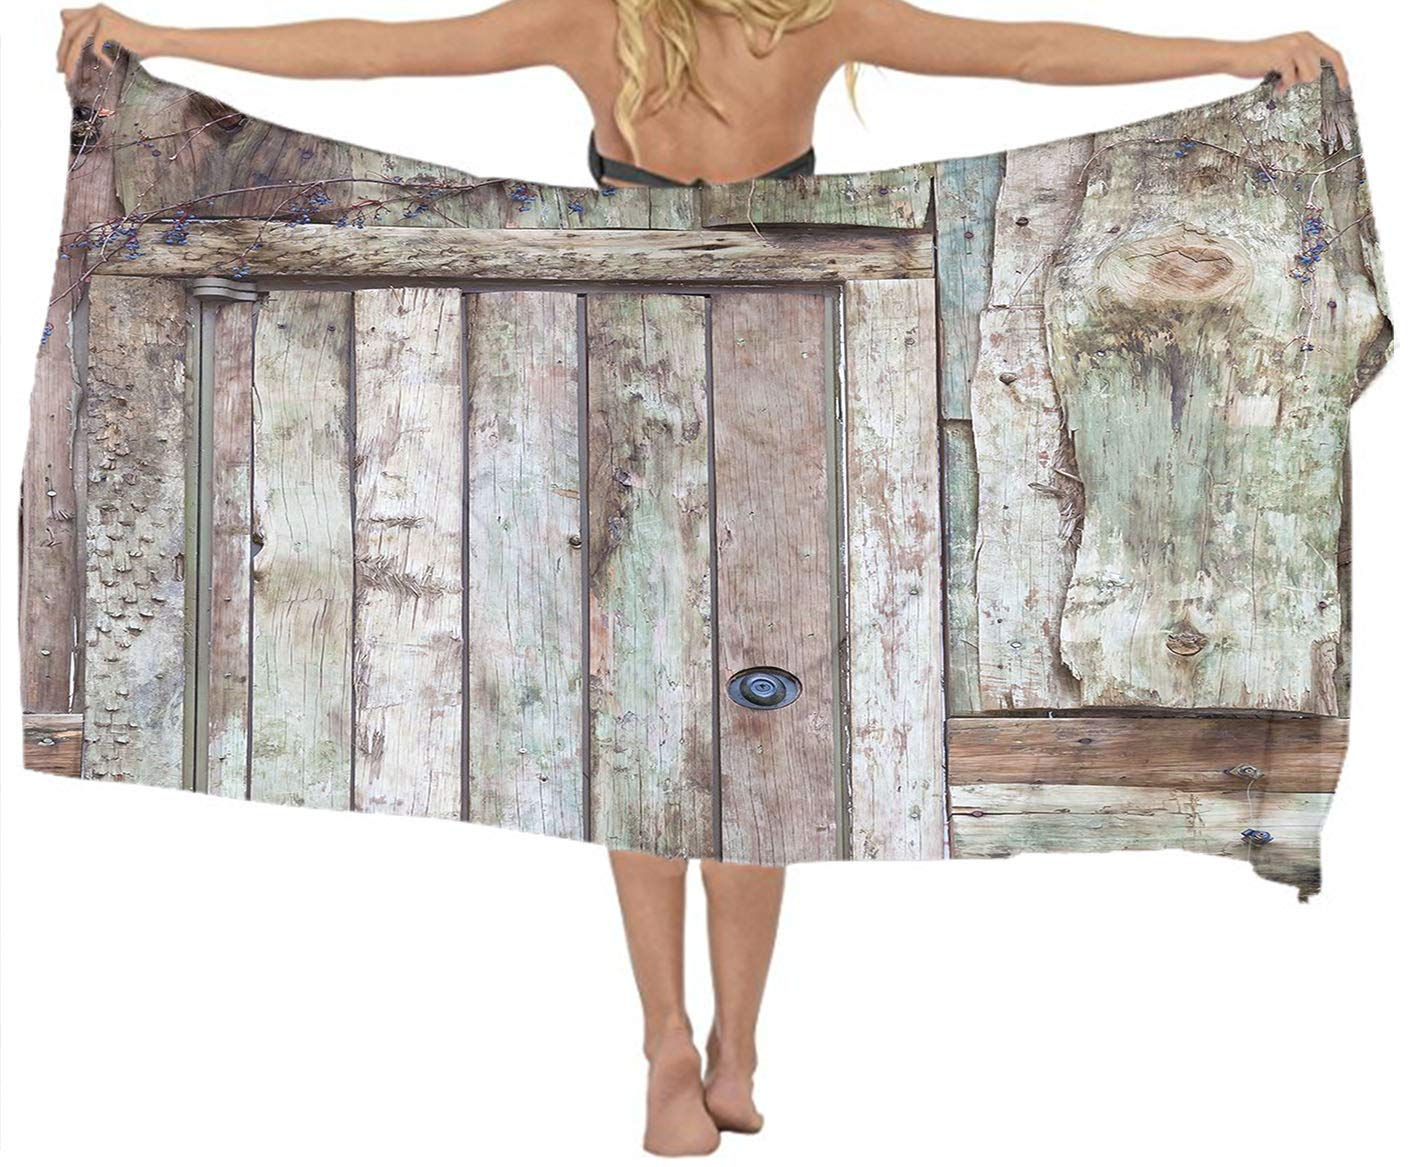 Yamenny Classic CuteOld Rustic Barn Door Cottage Rural Mystic Shawl and Comfort Wrap for Women&Girl,Non-Toxic Decor